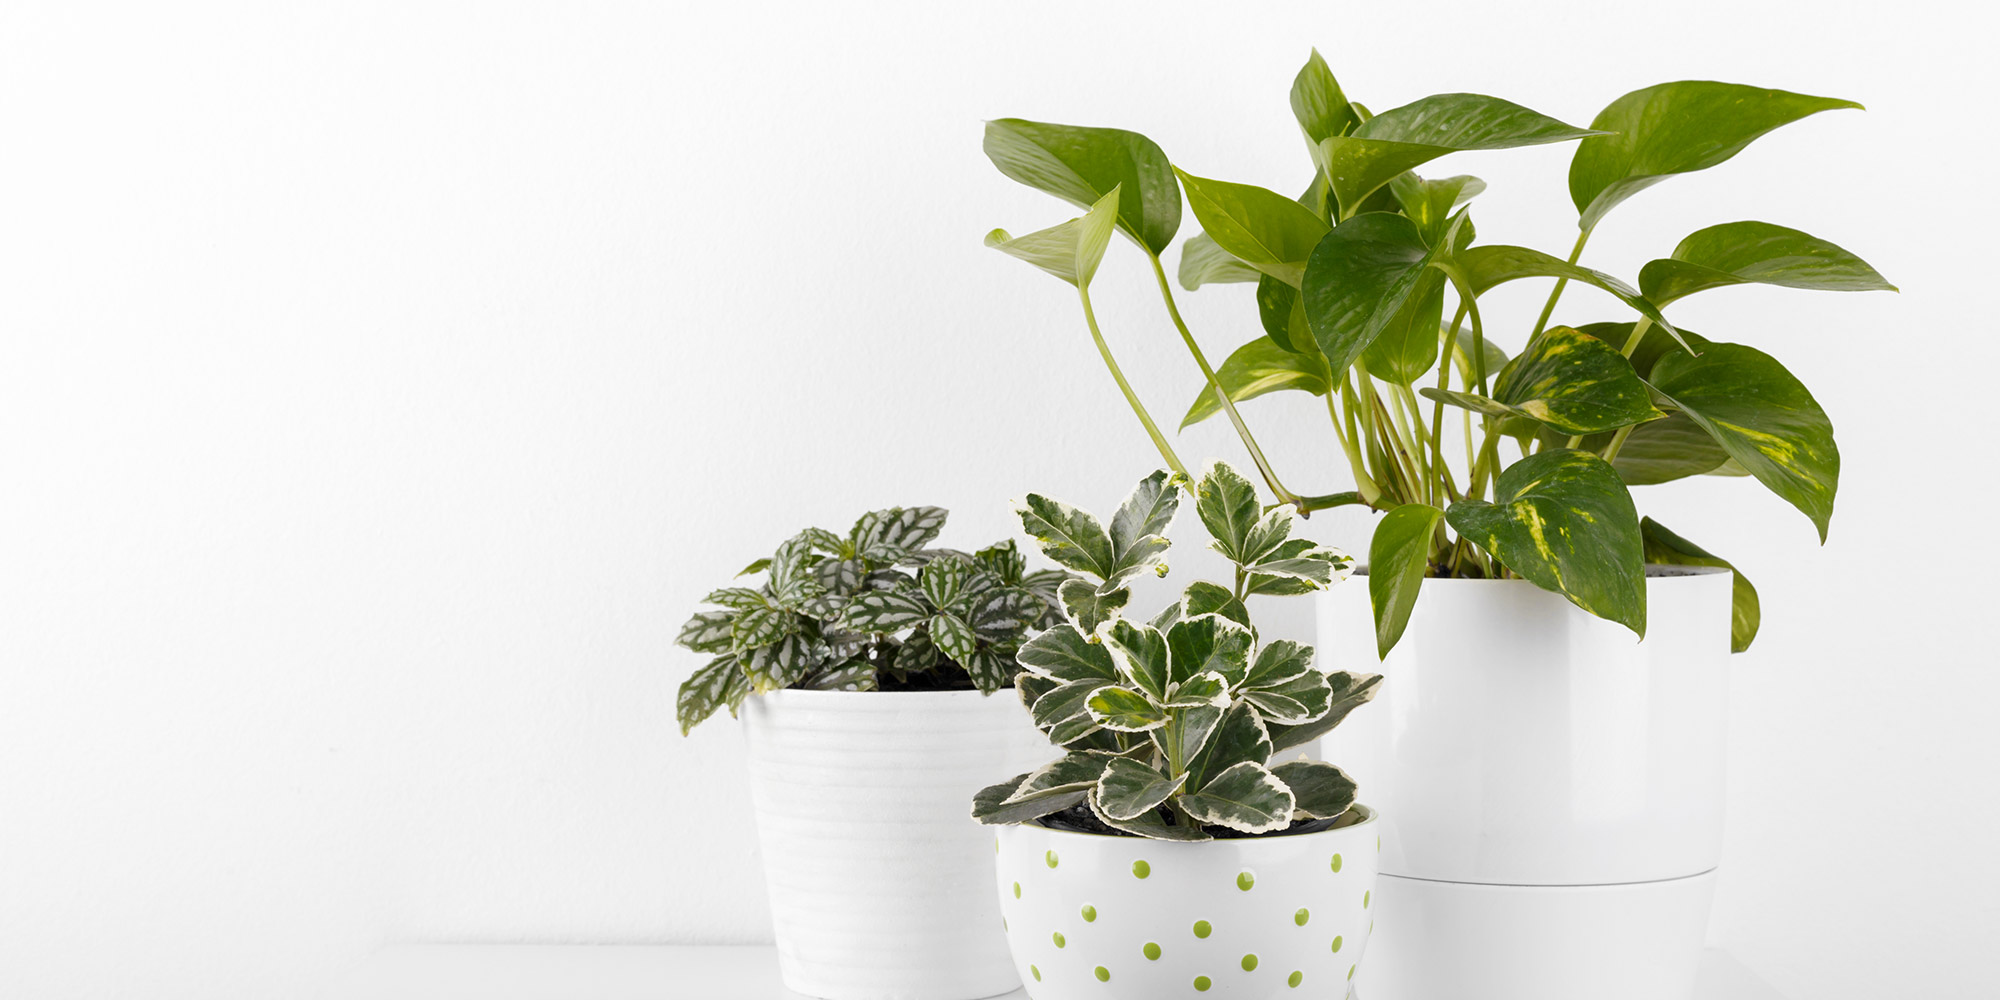 To take dust off live or artificial leaves, lightly dampen a microfiber cloth and wipe over the leaves. This will also add a bit of moisture to the real plants too.